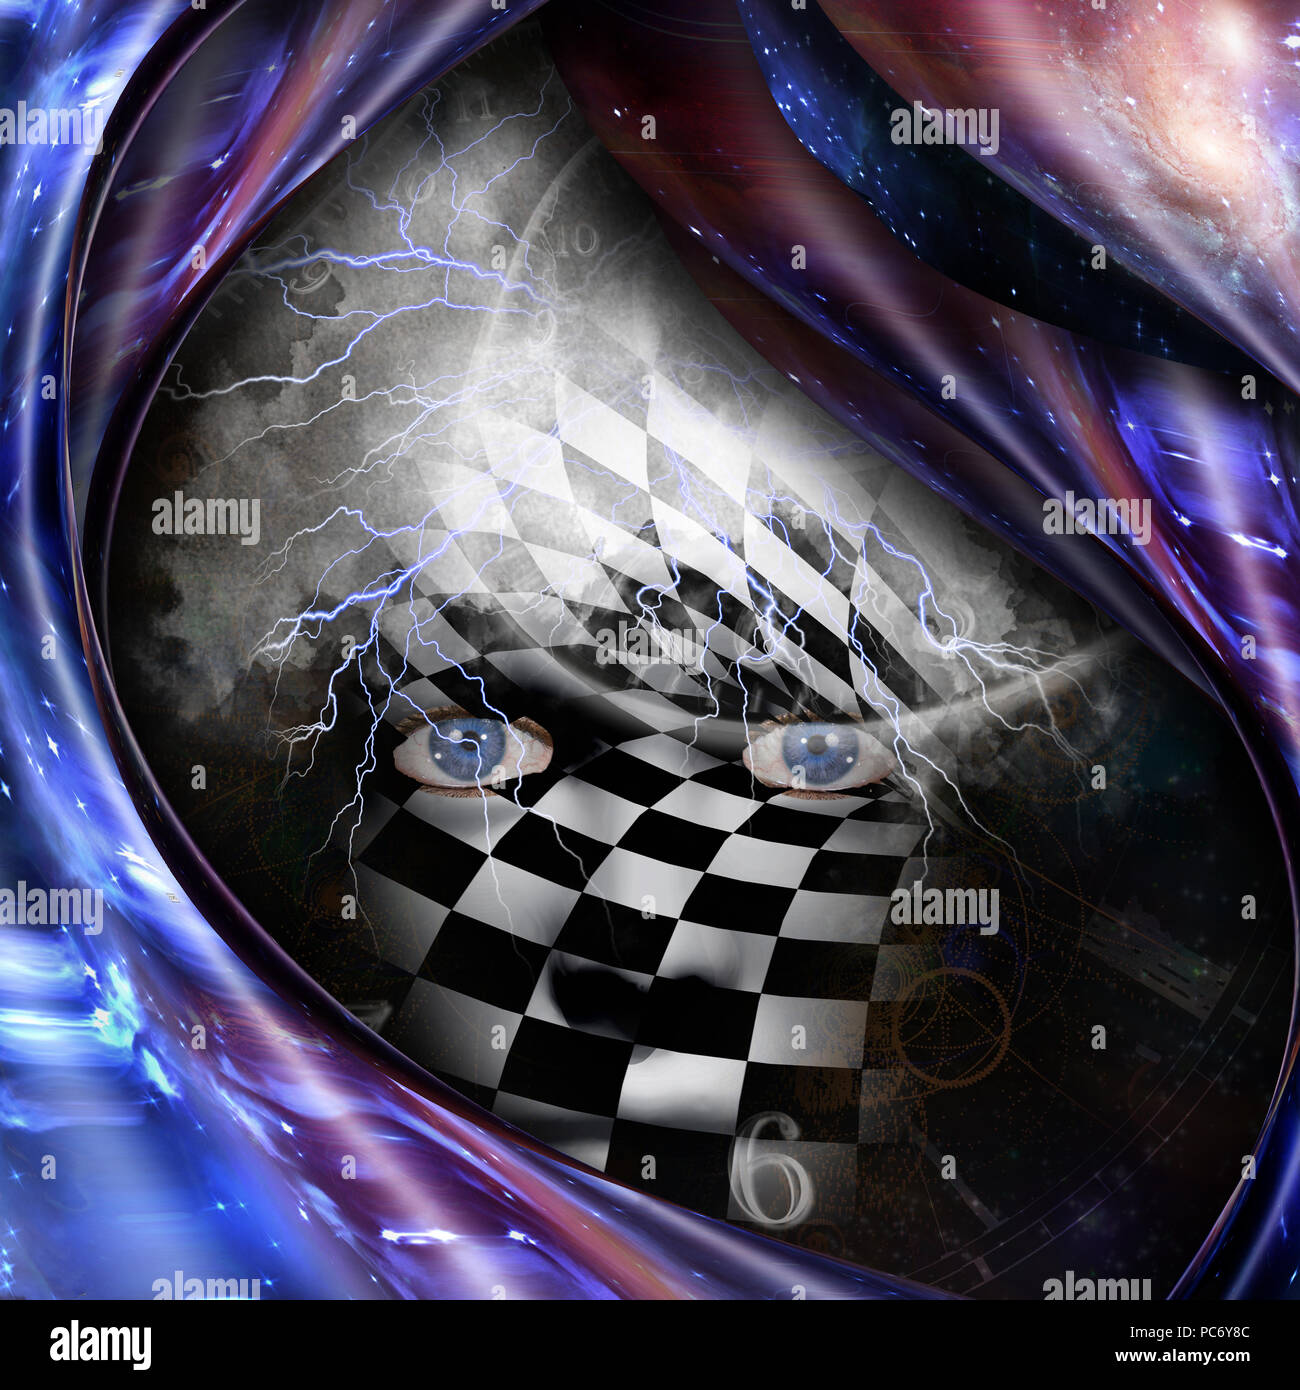 Surrealism and symbolism. Time spirals and checkered face. 3D rendering - Stock Image